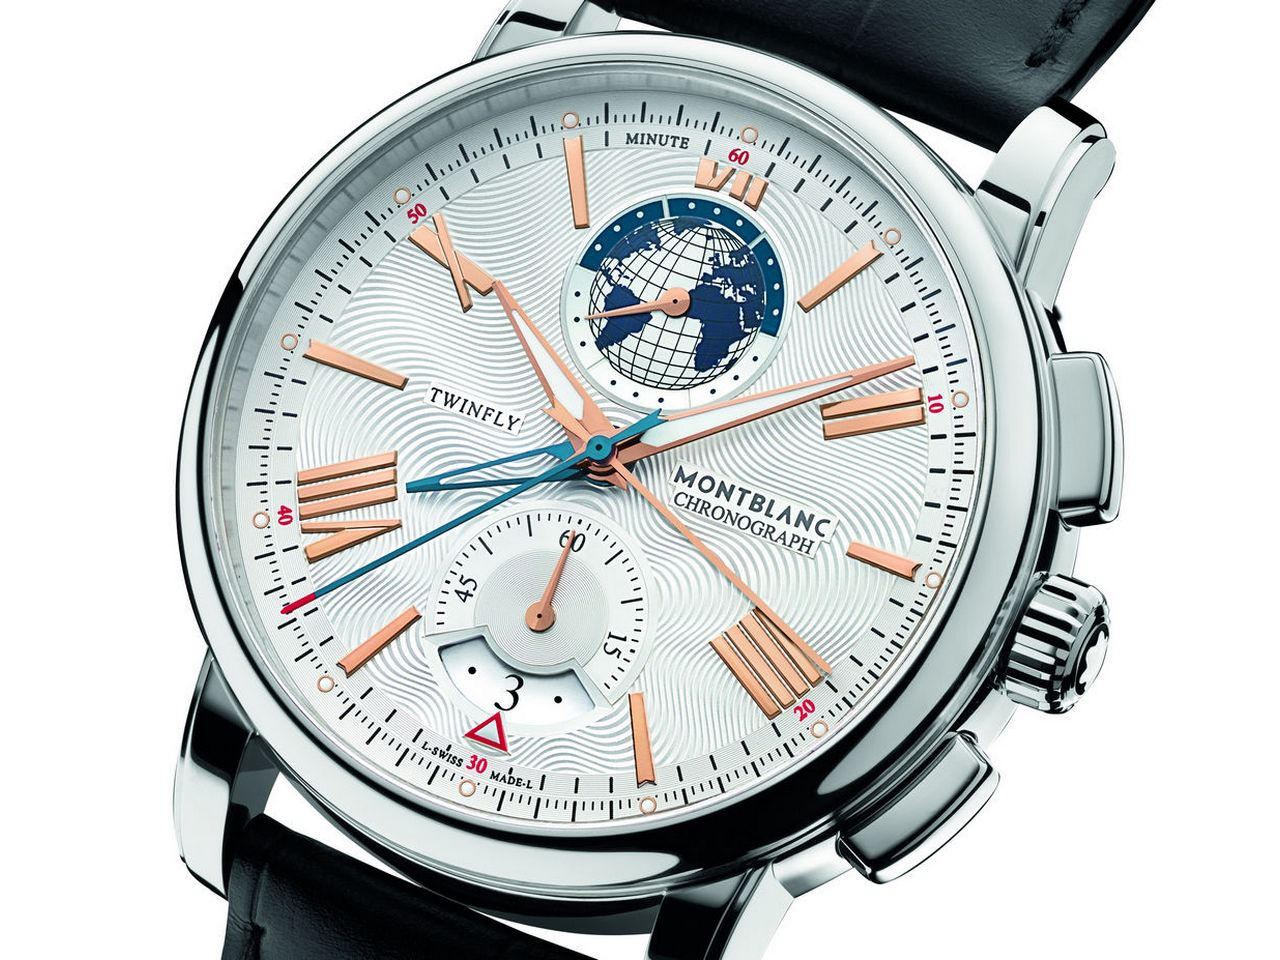 Montblanc-4810-TwinFly-Chronograph-110-Years-Edition-sihh-2016_0-100_1